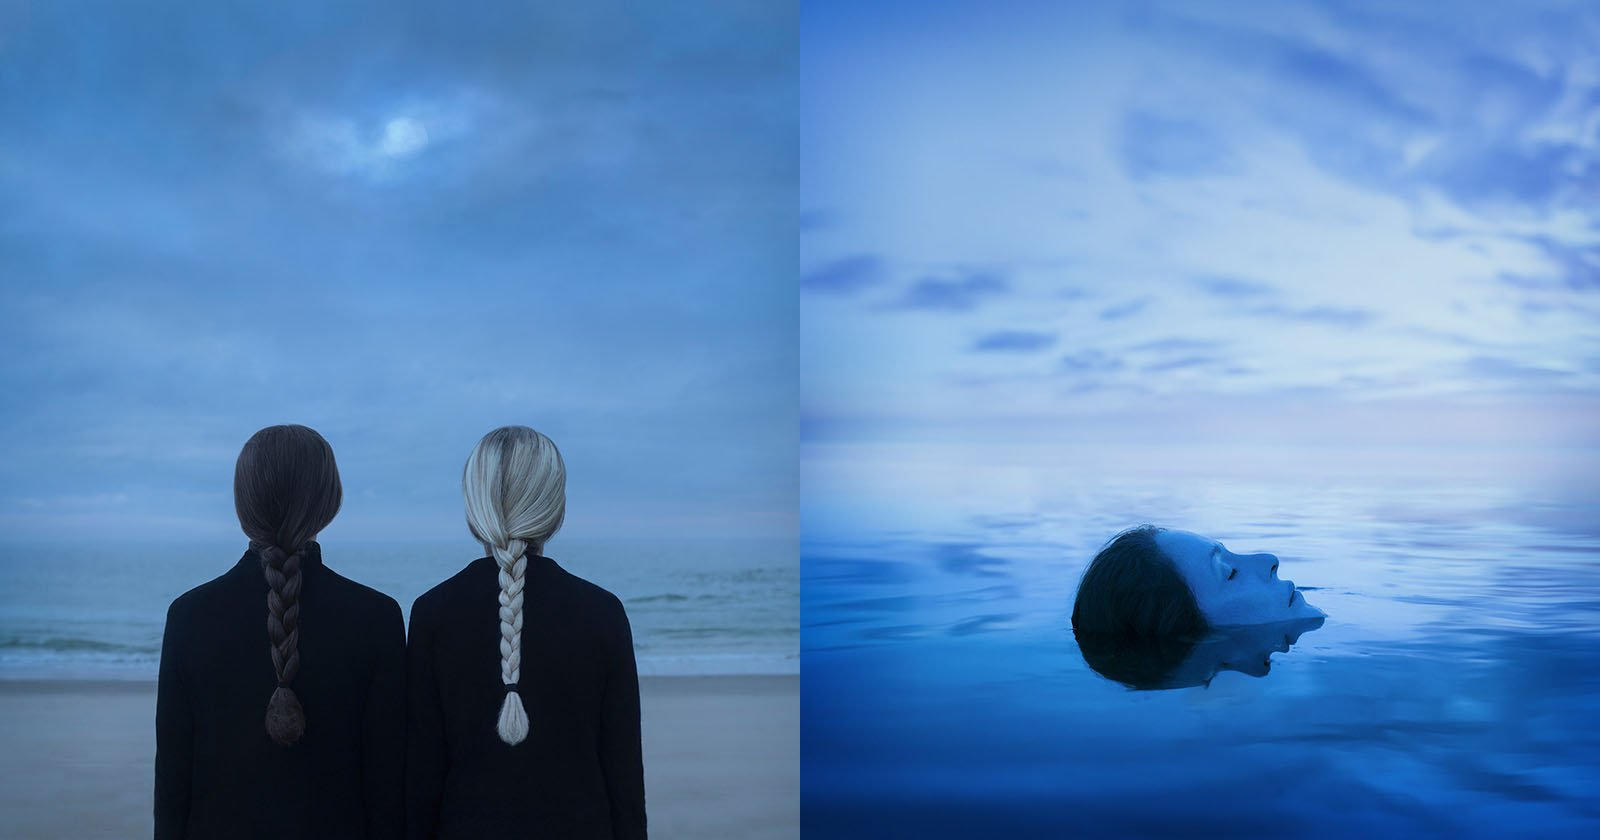 My Surreal Photography is a Reflection on Years of Depression